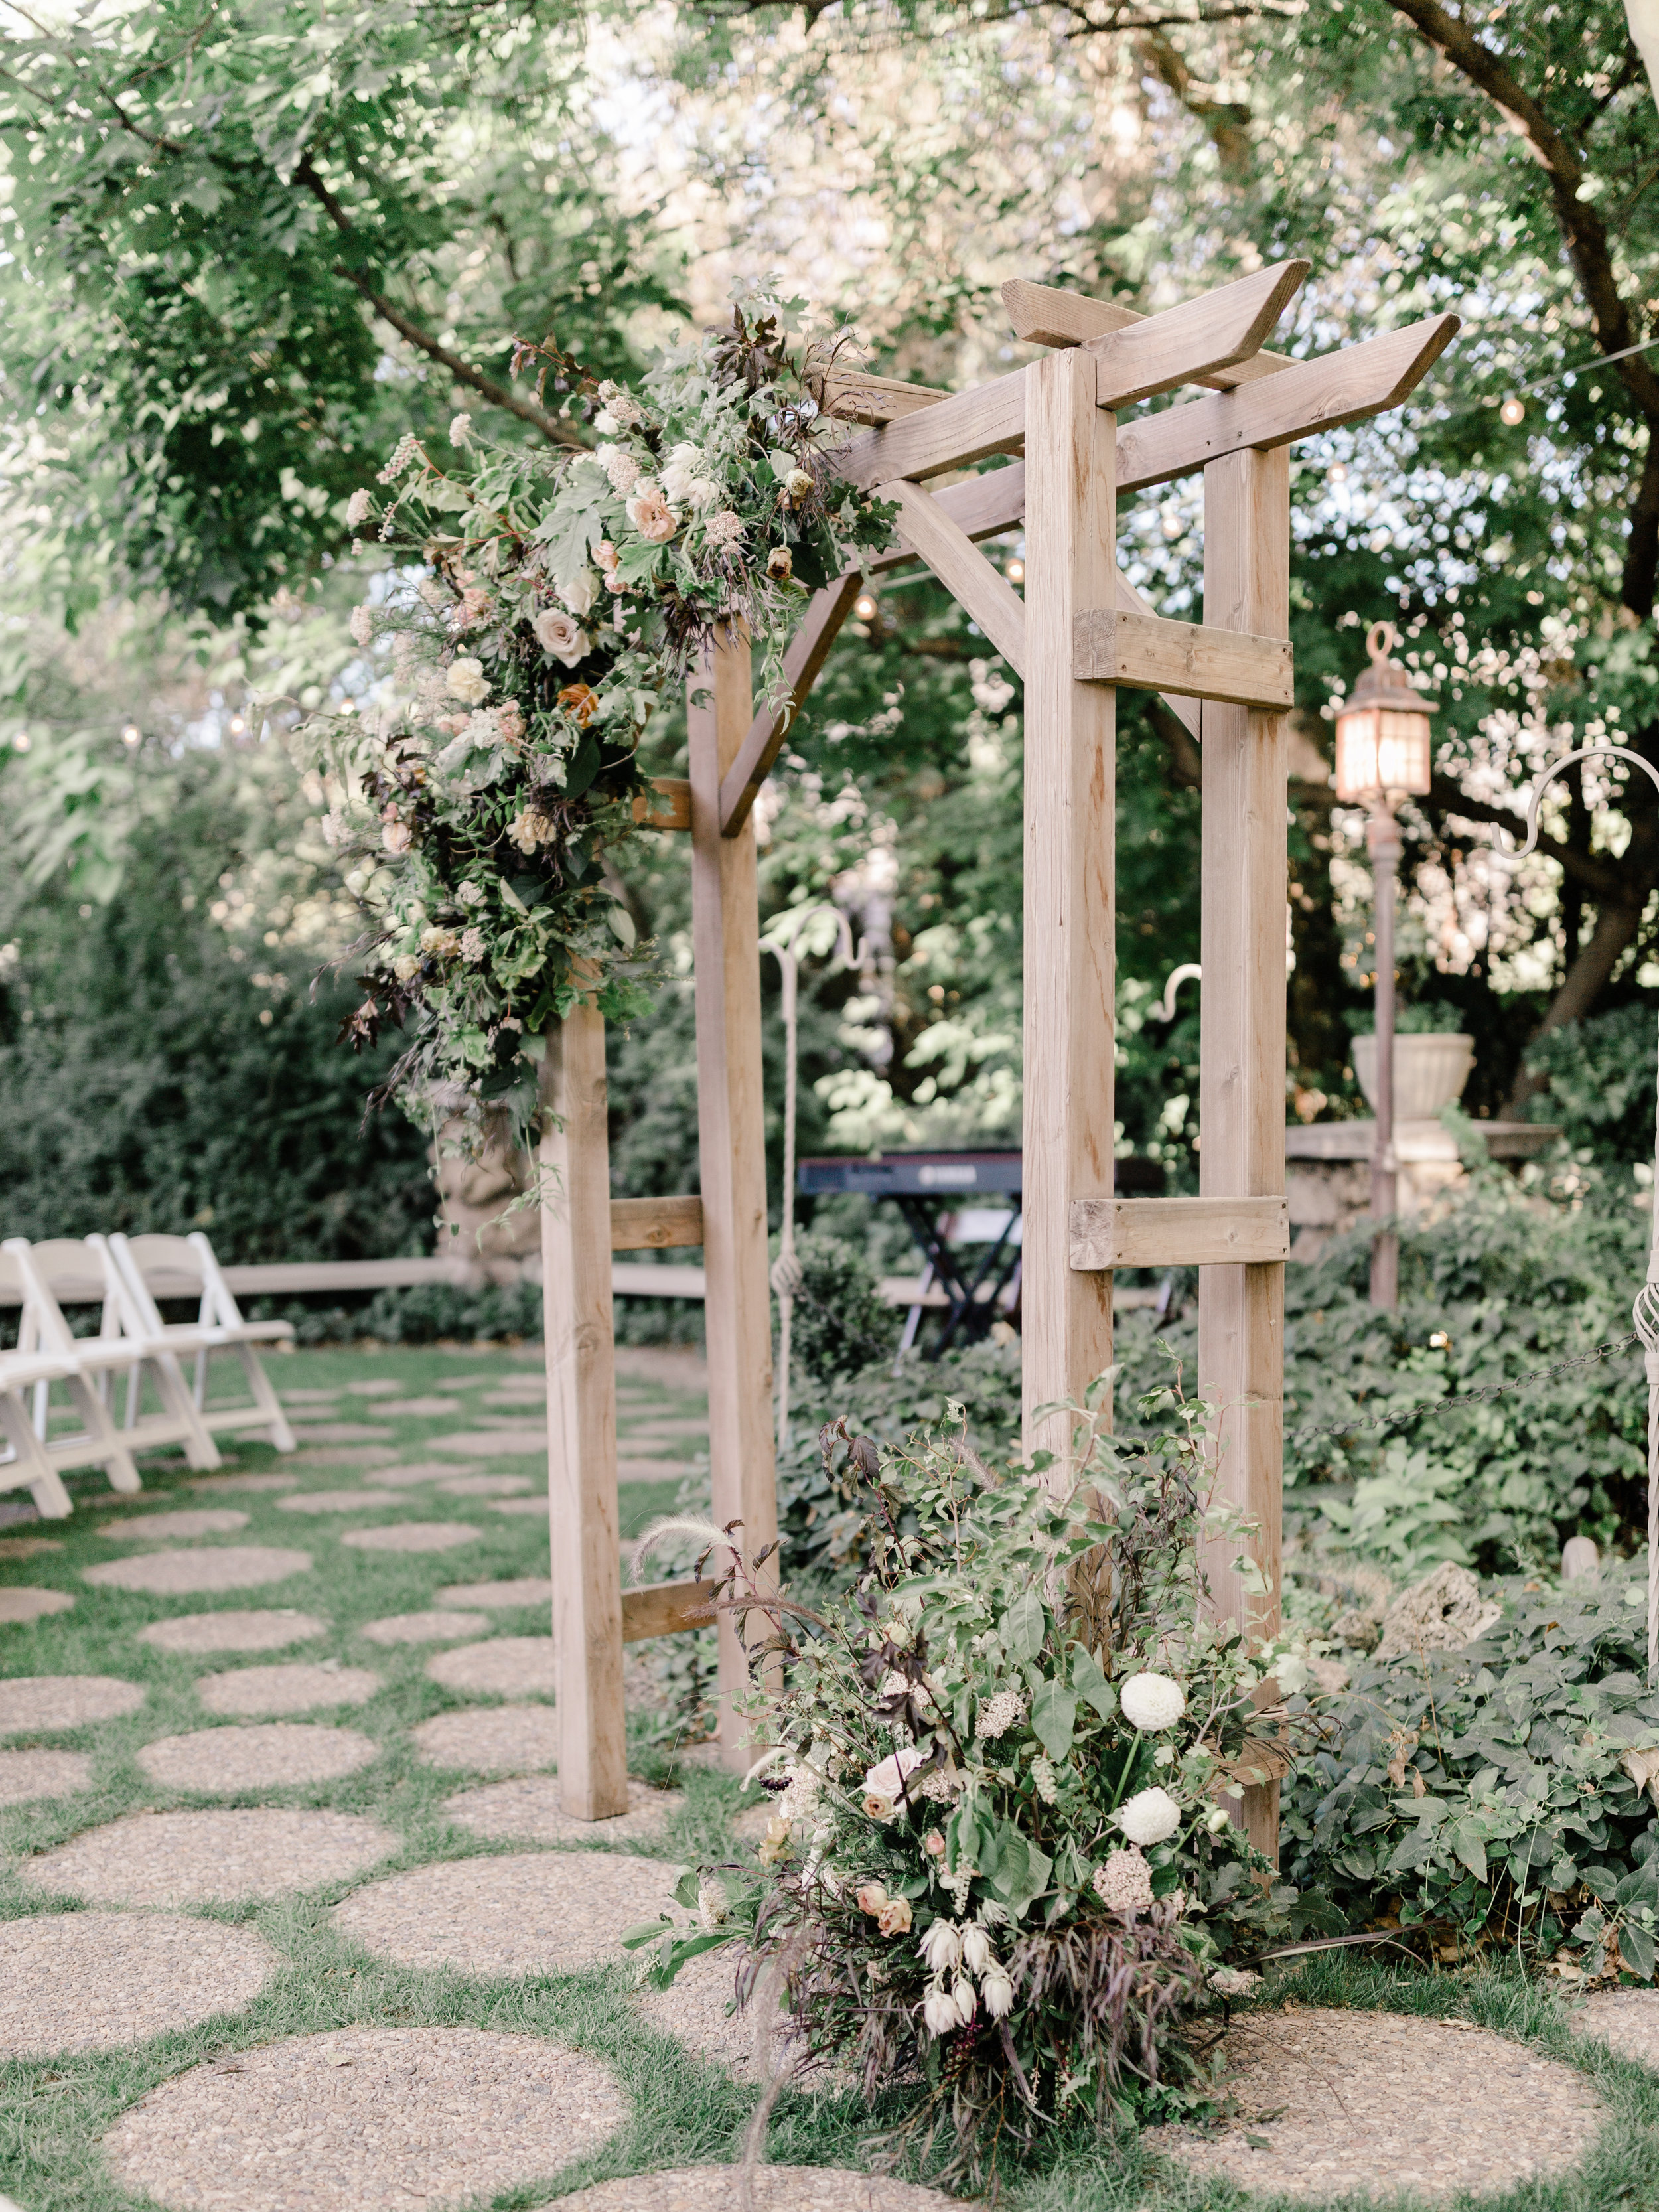 A natural wooden arch with burgundy for an early autumn wedding at The Bungalow in Pleasant Grove, Utah